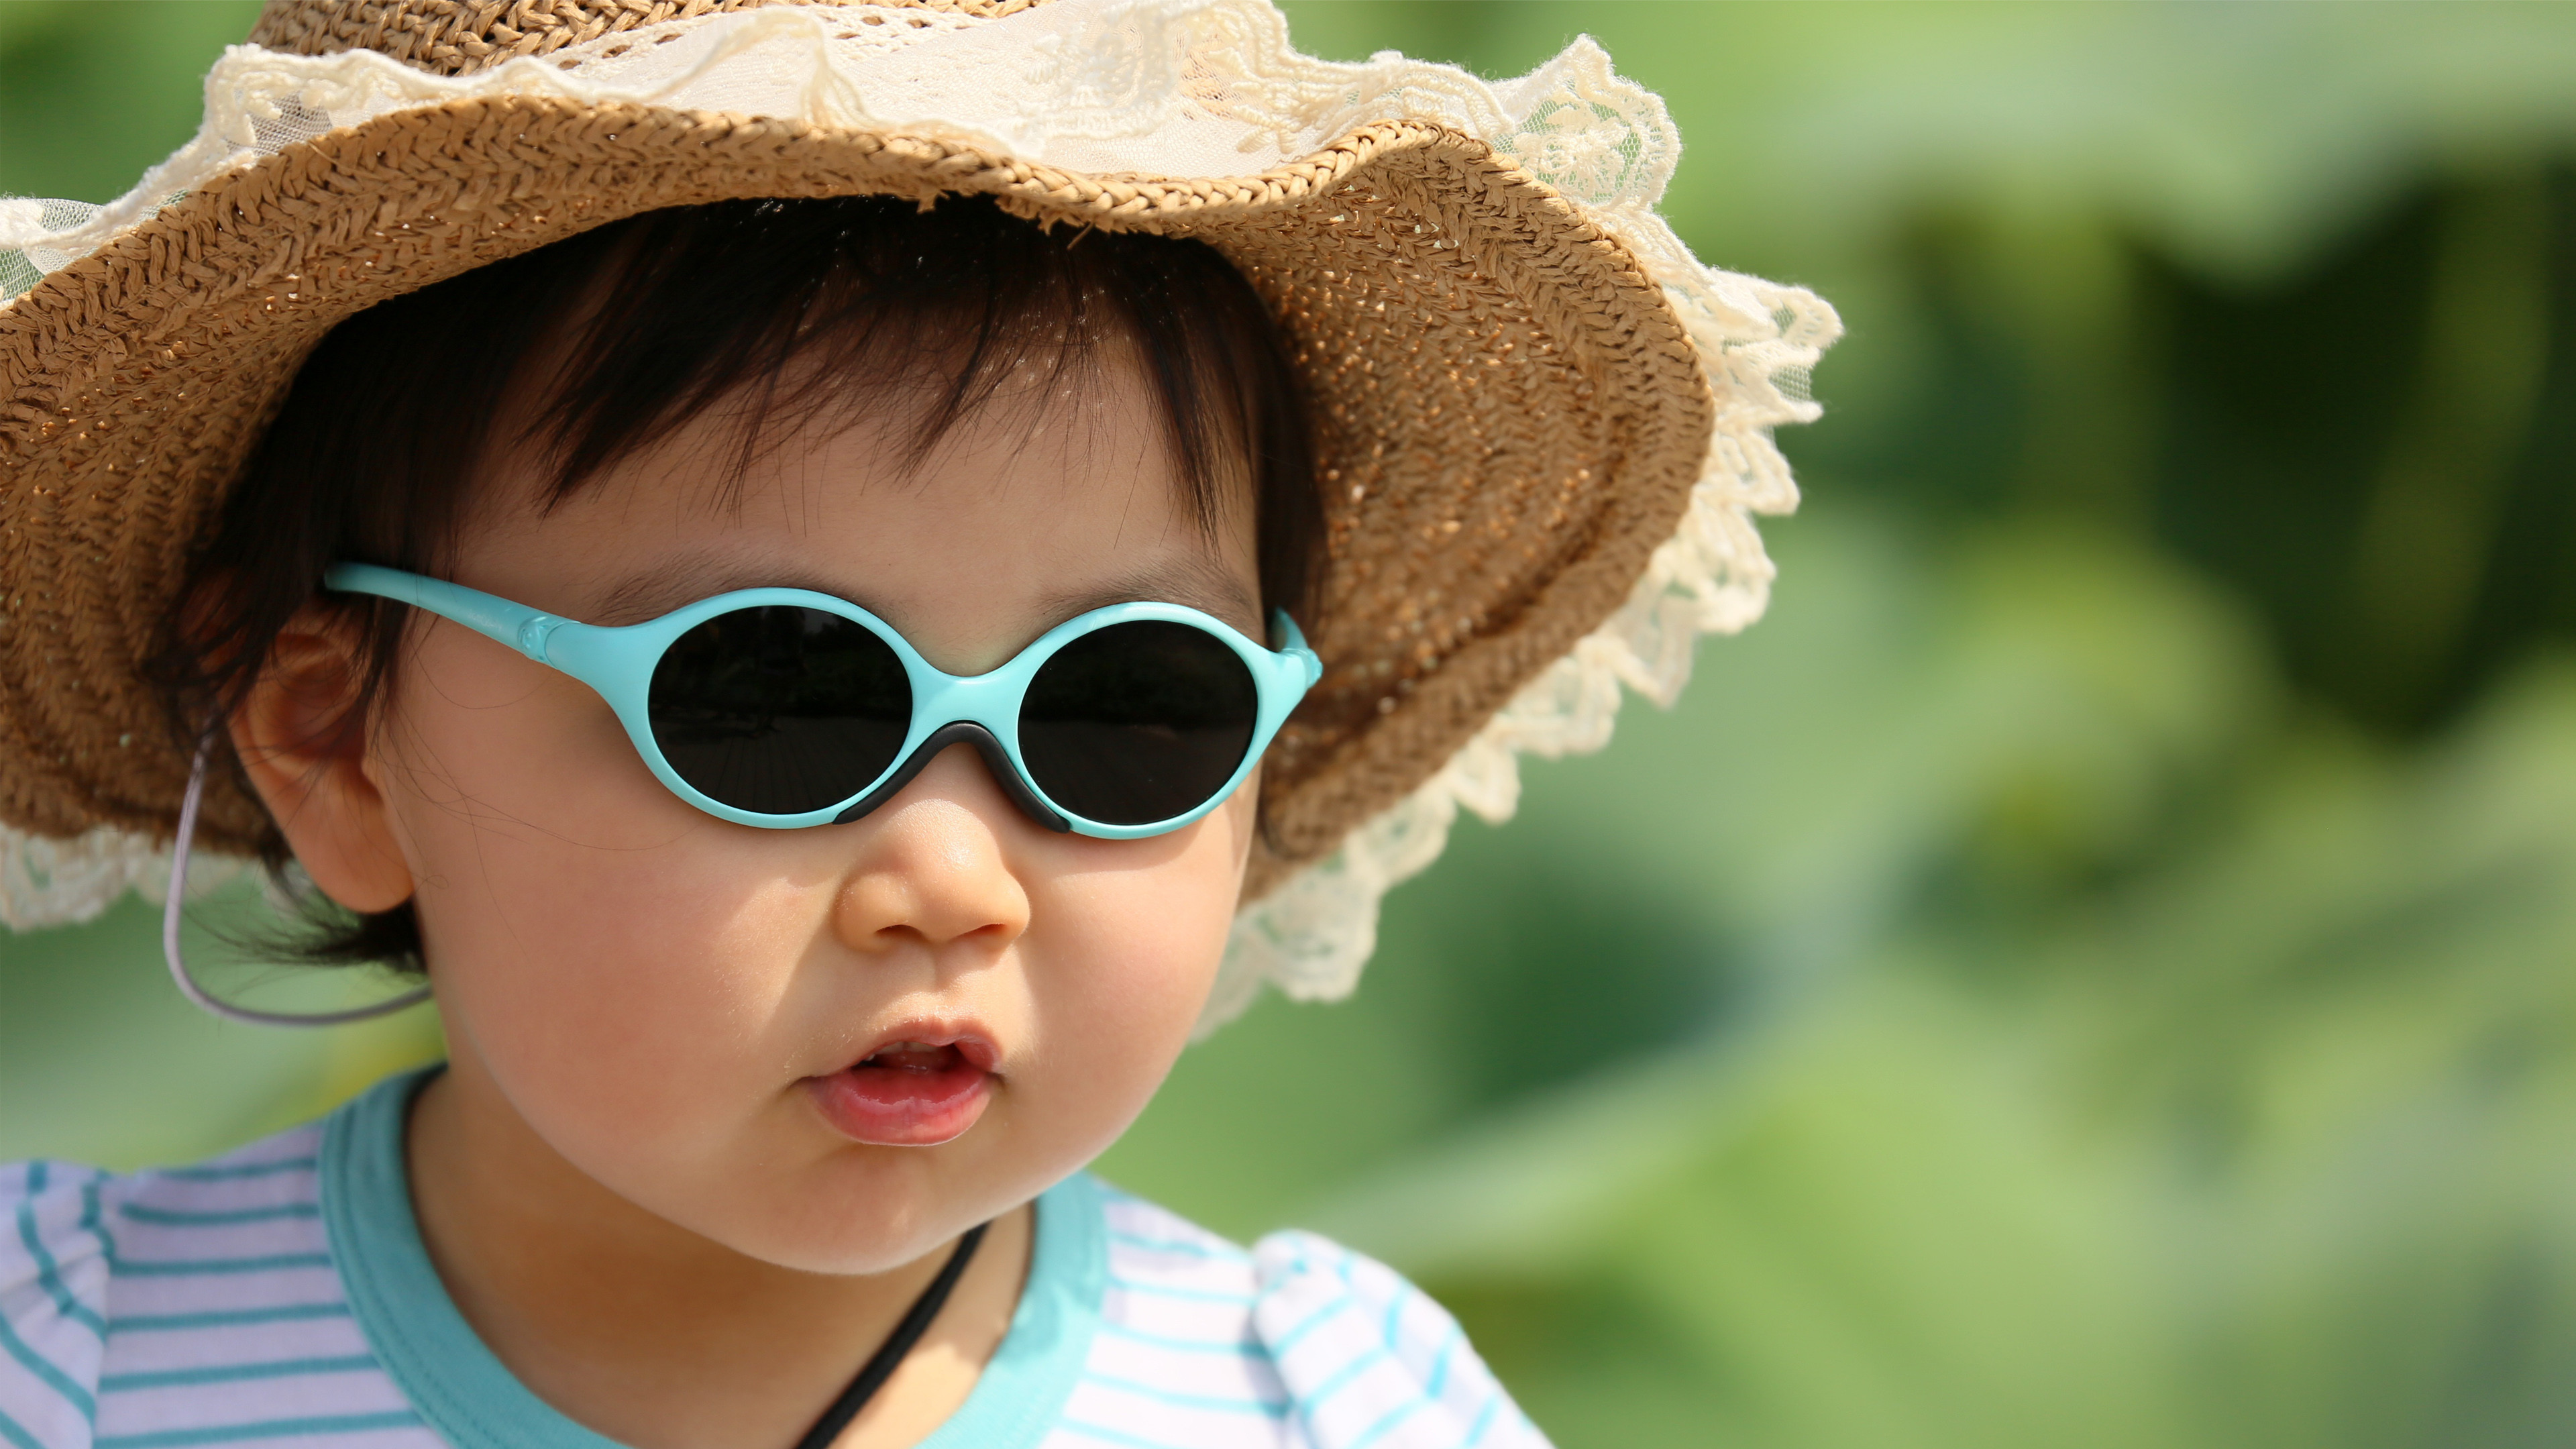 Baby HD Wallpapers Backgrounds Wallpaper